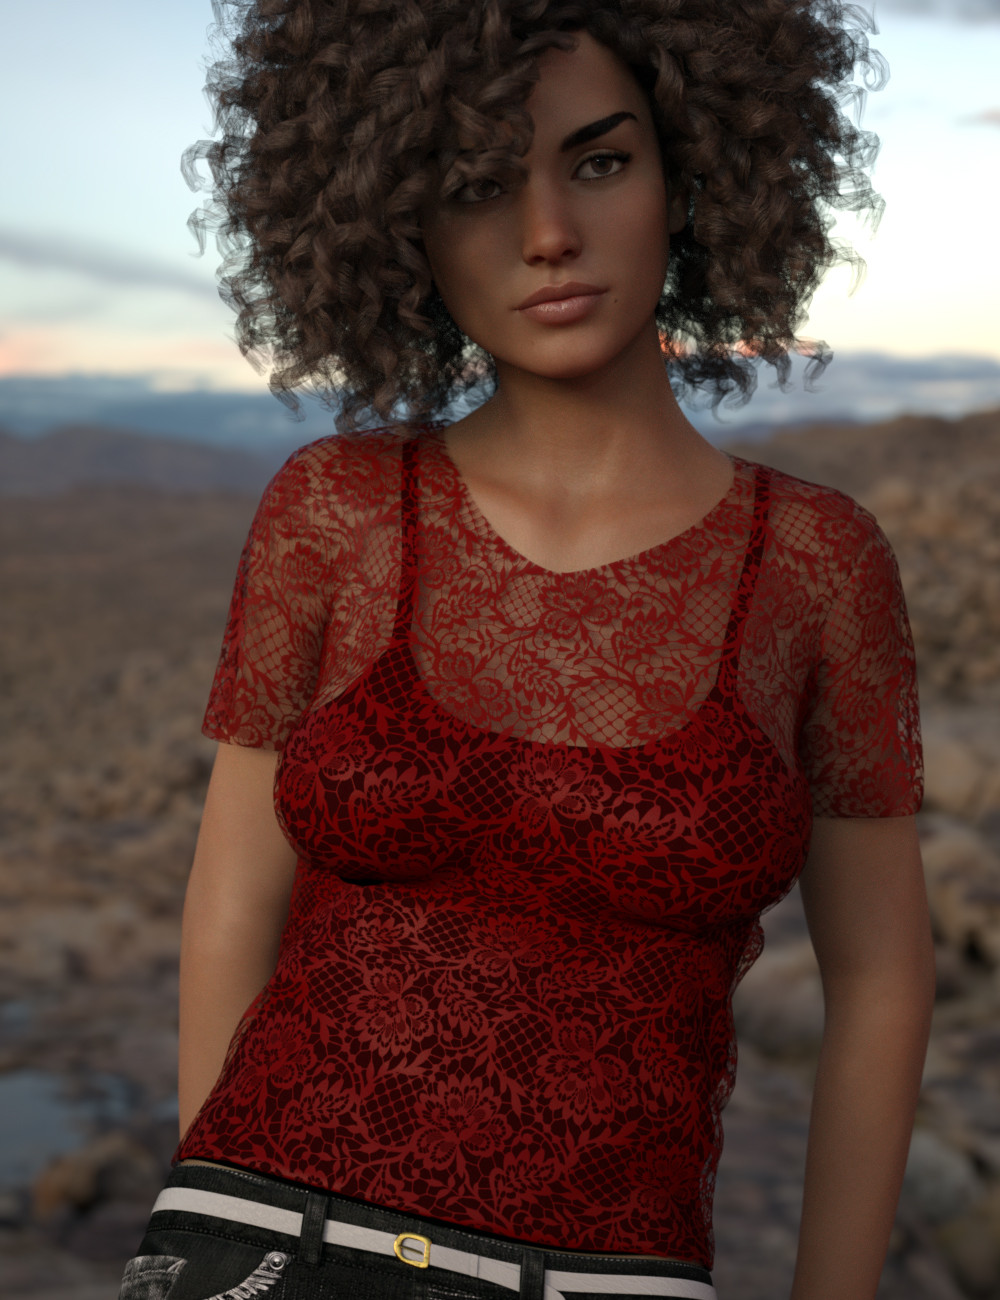 3d render of a woman with curly hair wearing a red lace tshirt